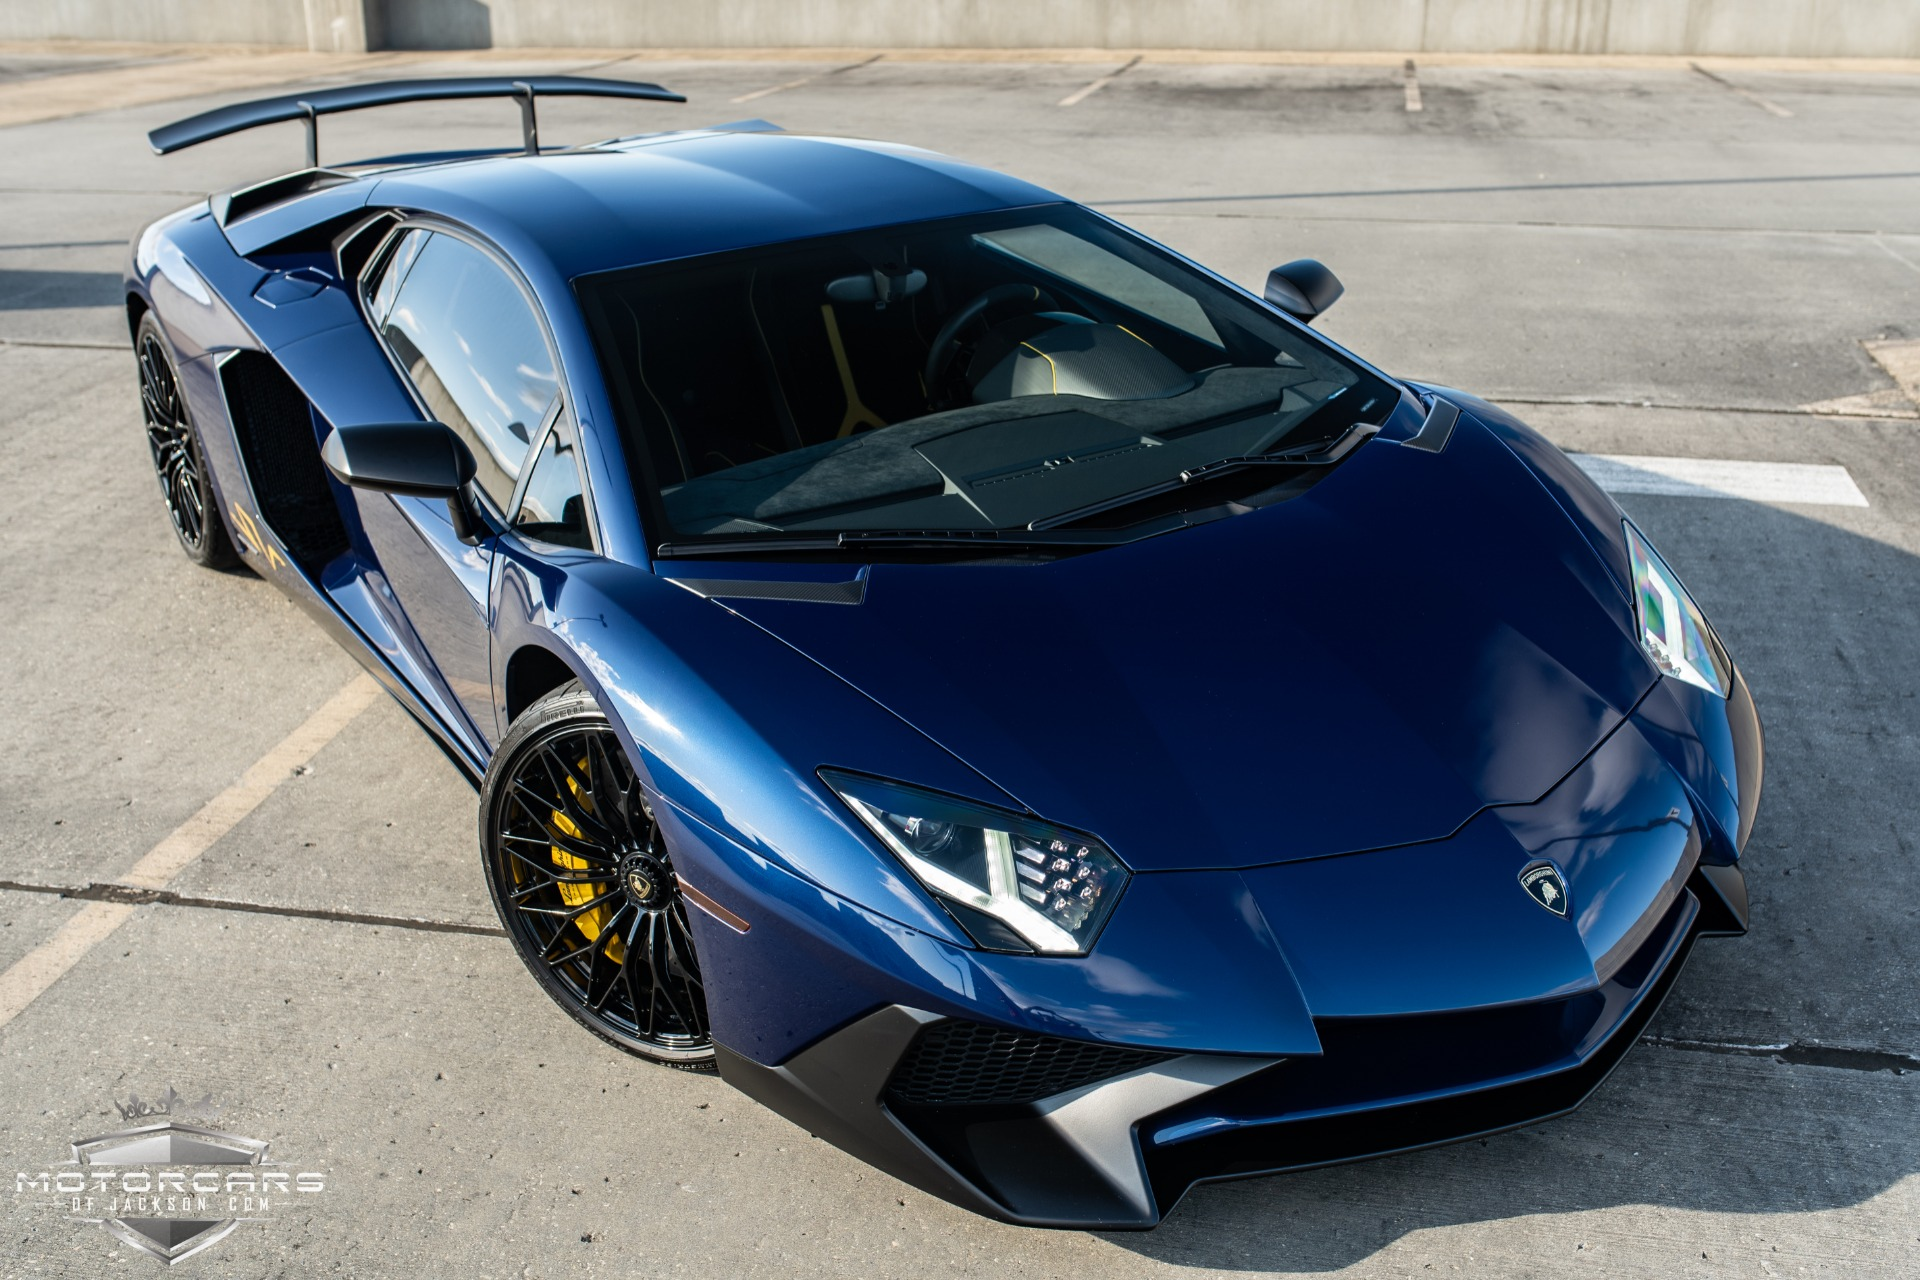 Used-2017-Lamborghini-Aventador-SV---LP750-4-Super-Veloce-for-sale-Jackson-MS